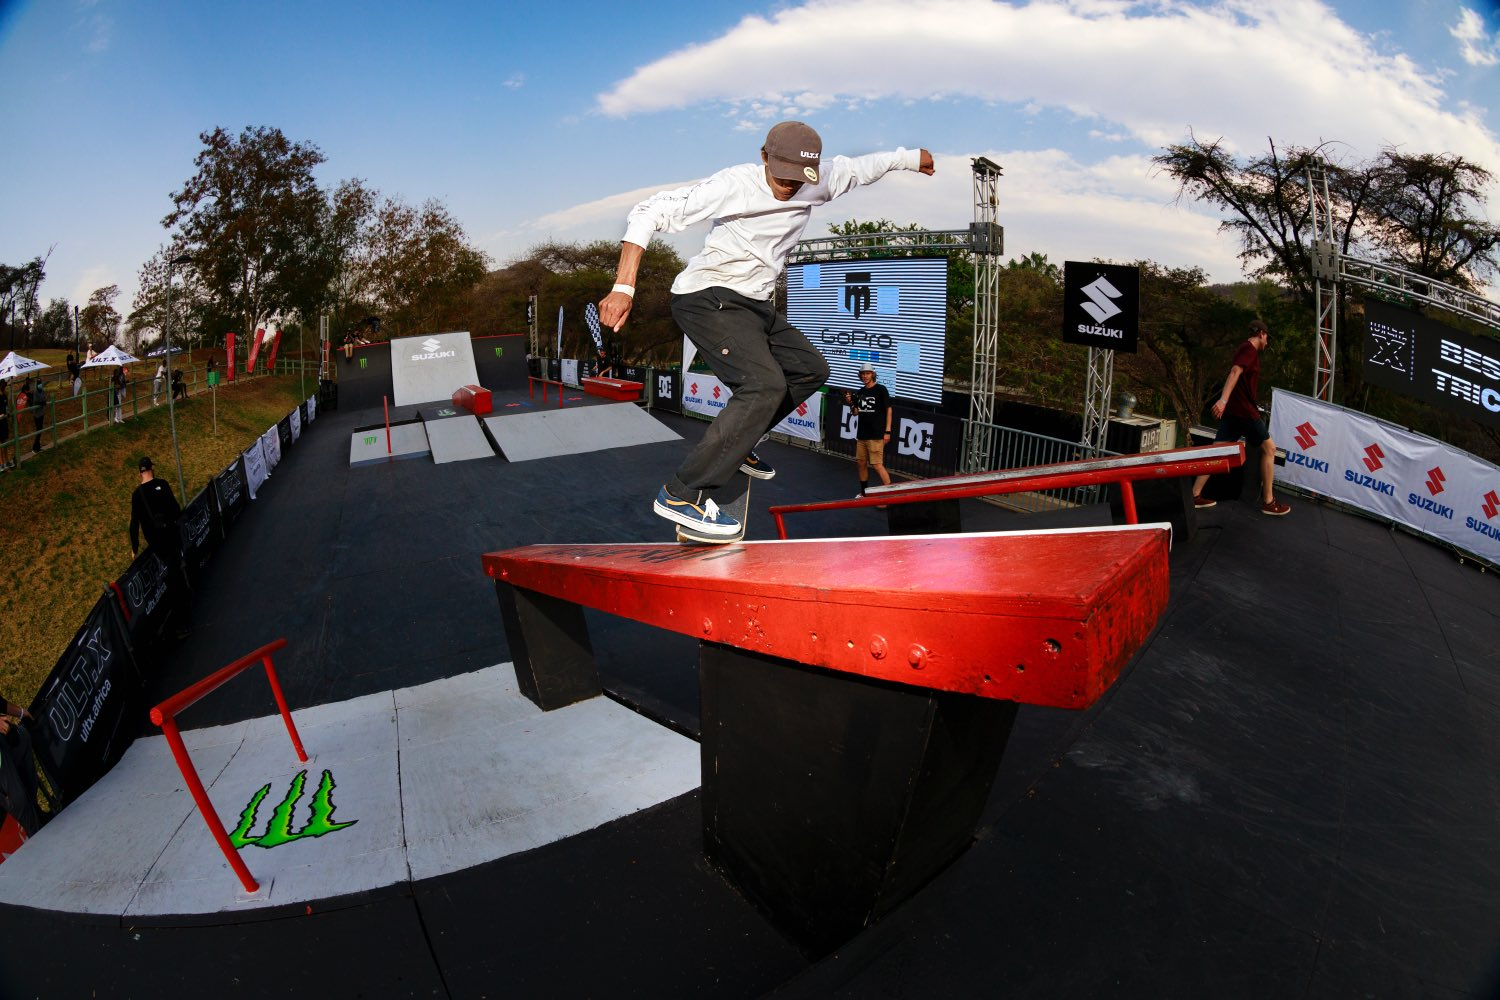 Devandre Gallant competing in the Skate contest at ULT.X 2021